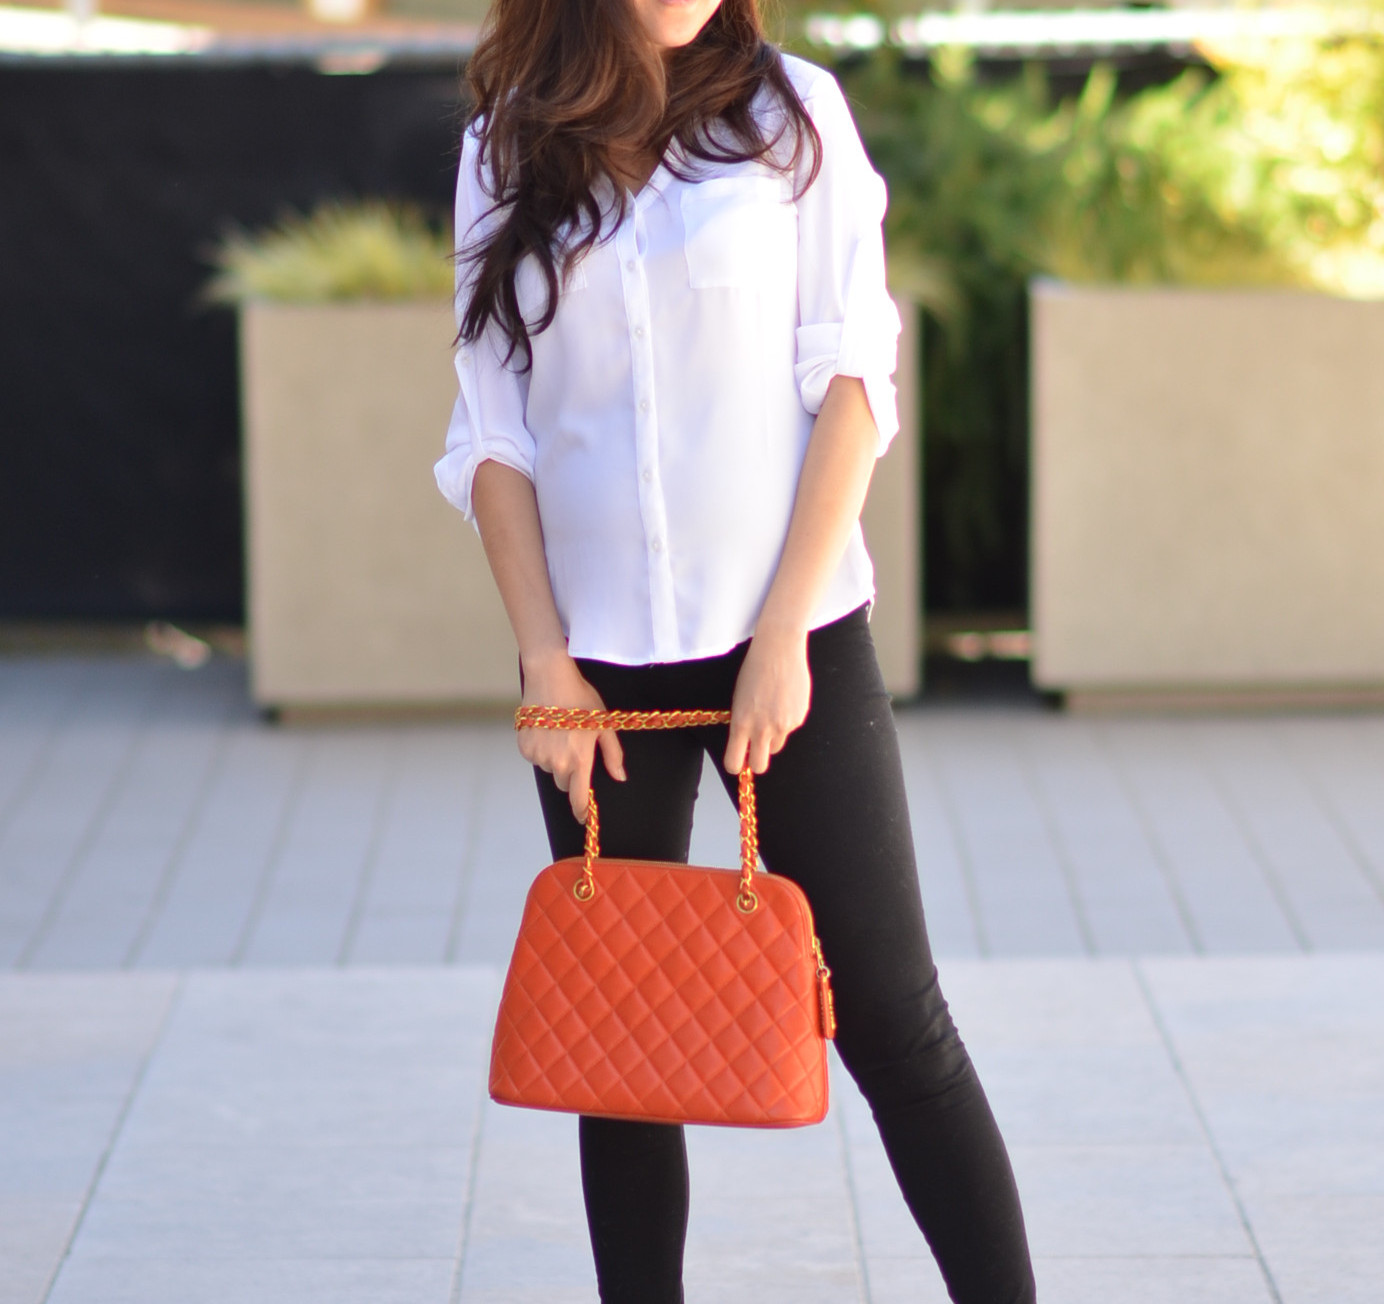 wearing bright colorful chanel bag